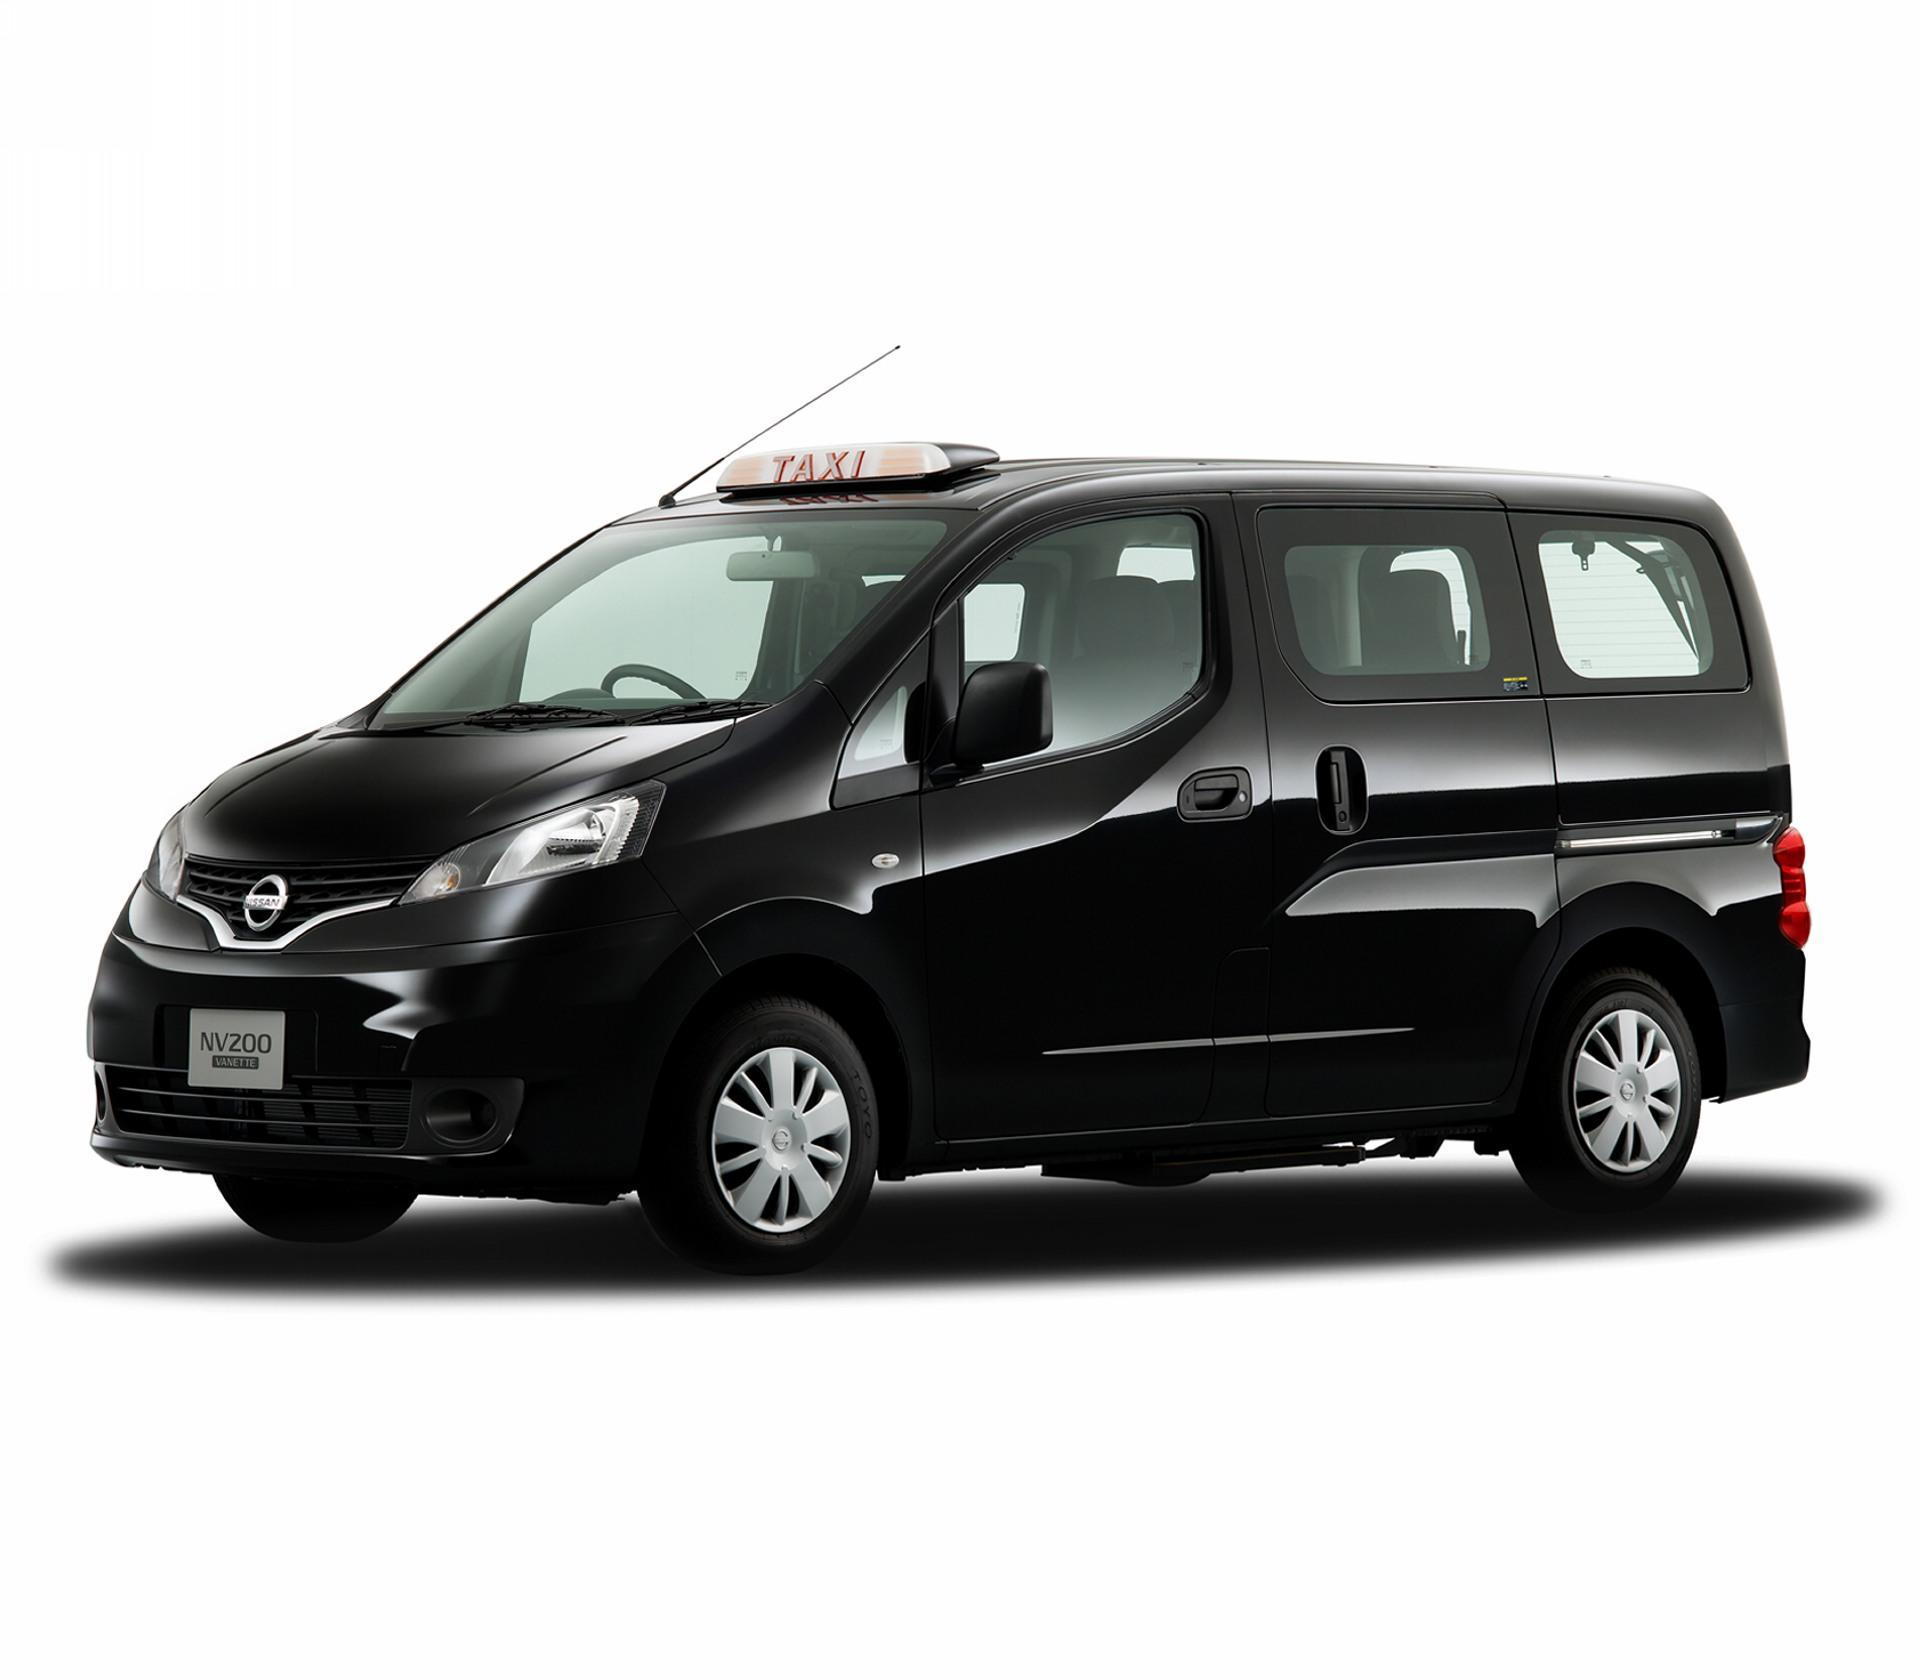 2011 Nissan NV200 Vanette Taxi News and Information